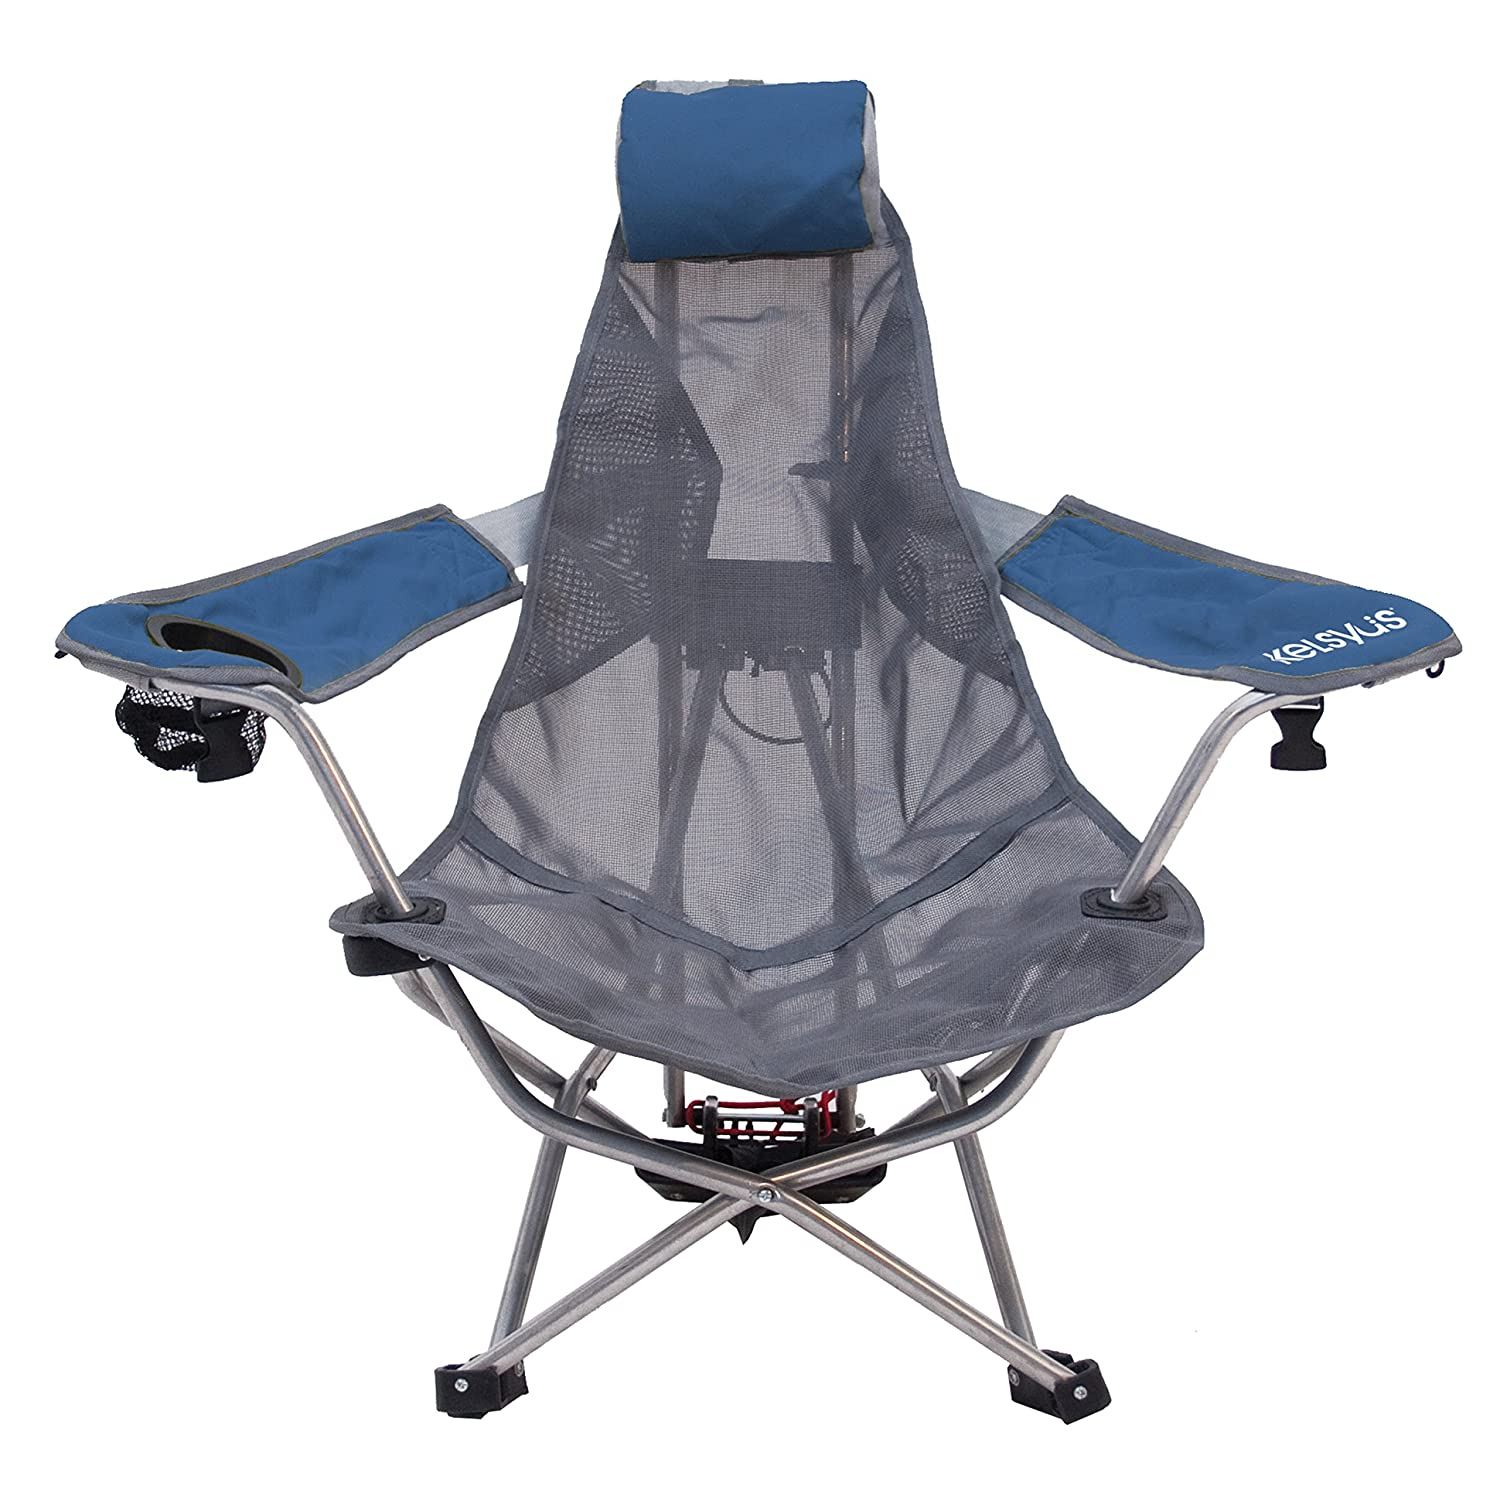 Kelsyus Mesh Backpack Chair Blue Amazon Garden & Outdoors